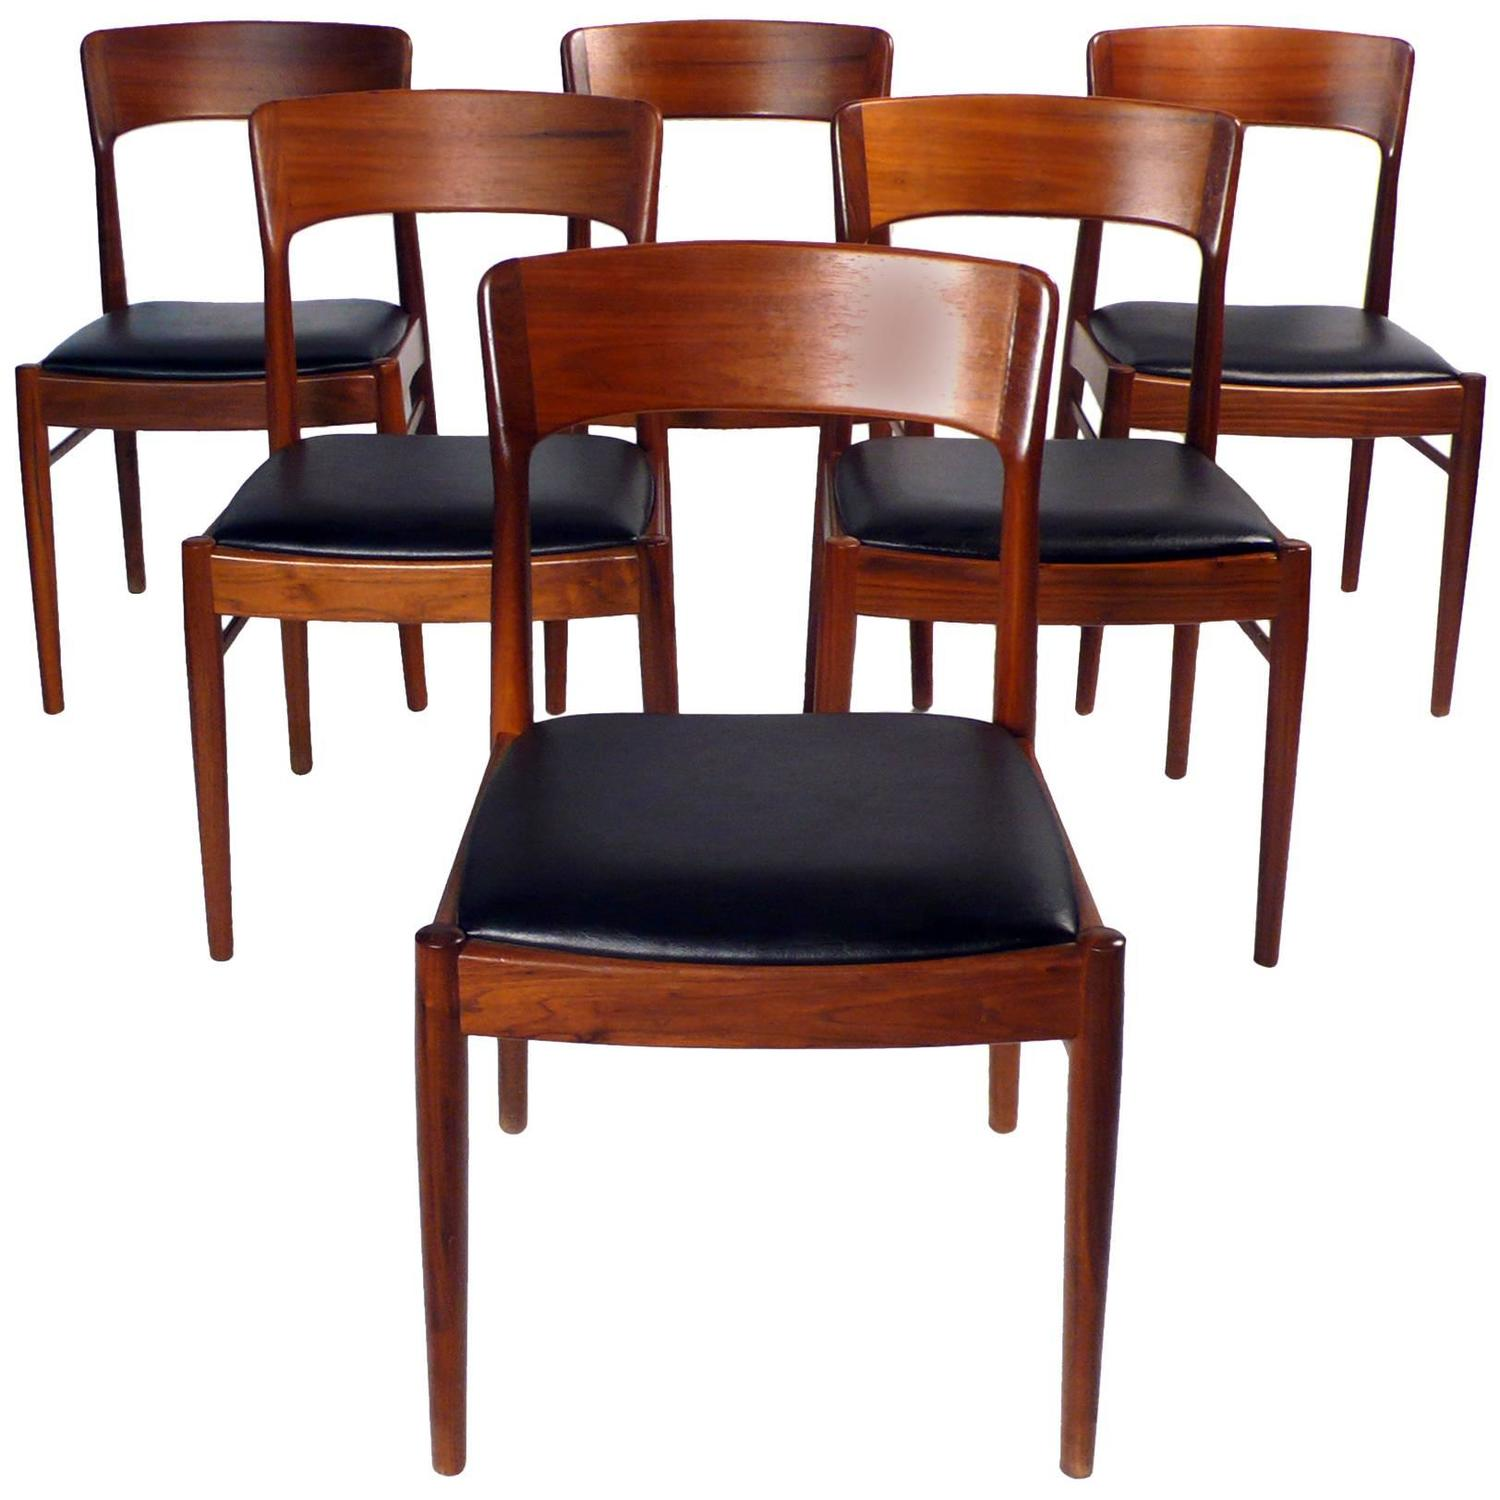 KS Danish Dining Chairs For Sale at 1stdibs